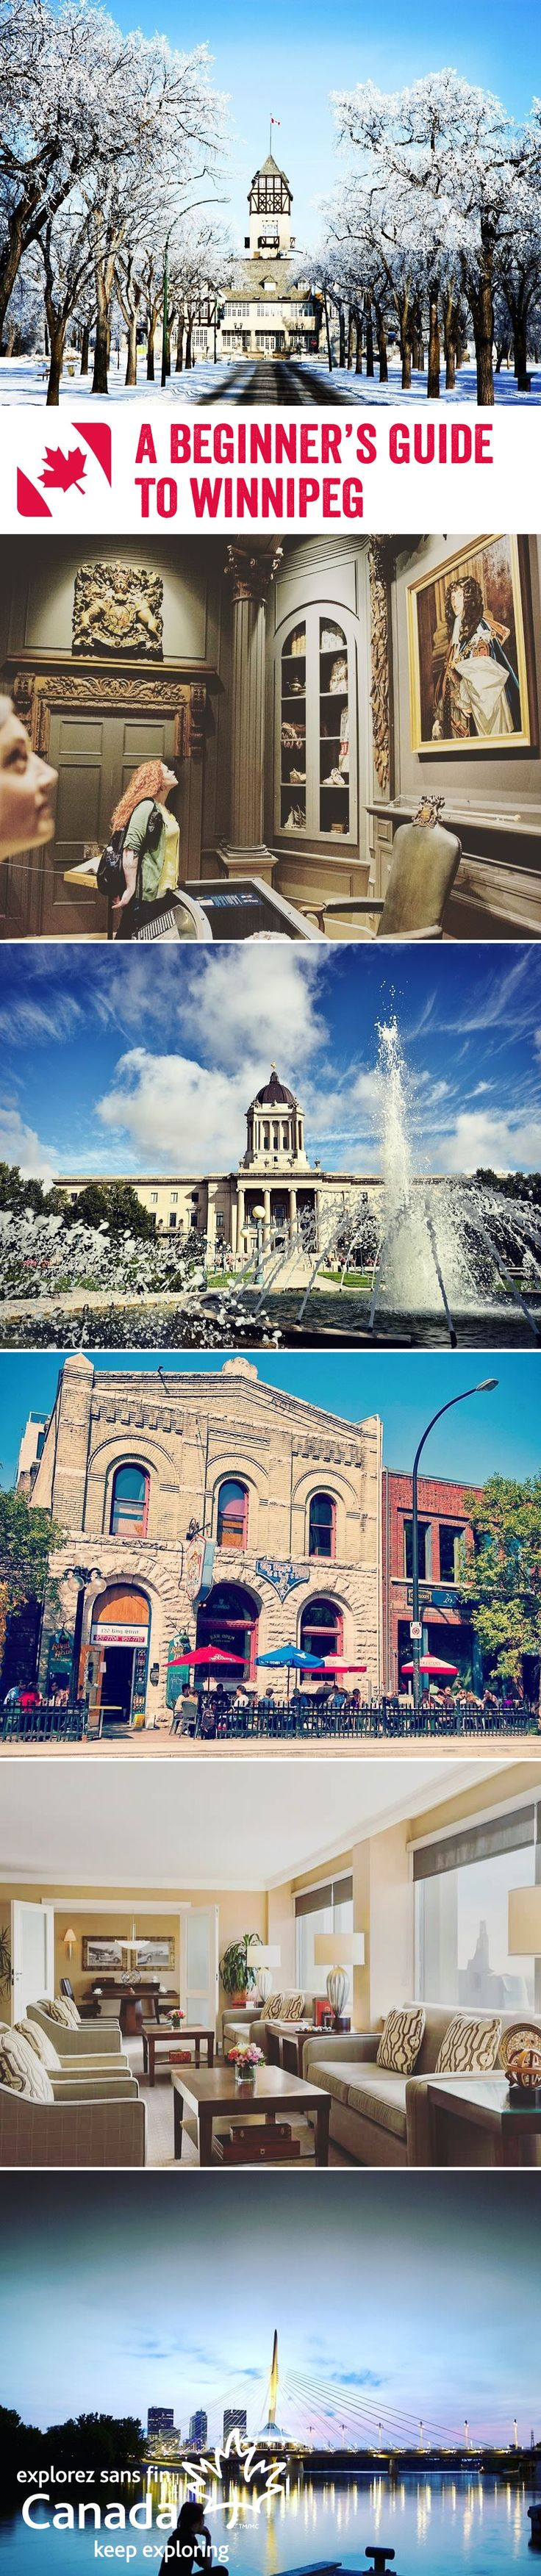 Whether you fancy canoeing on Lake Manitoba, relaxing in thermal pools, wandering through The Manitoba Museum, or tucking into steak at Maxime's Restaurant, Winnipeg is a quintessential Canadian city full of charm